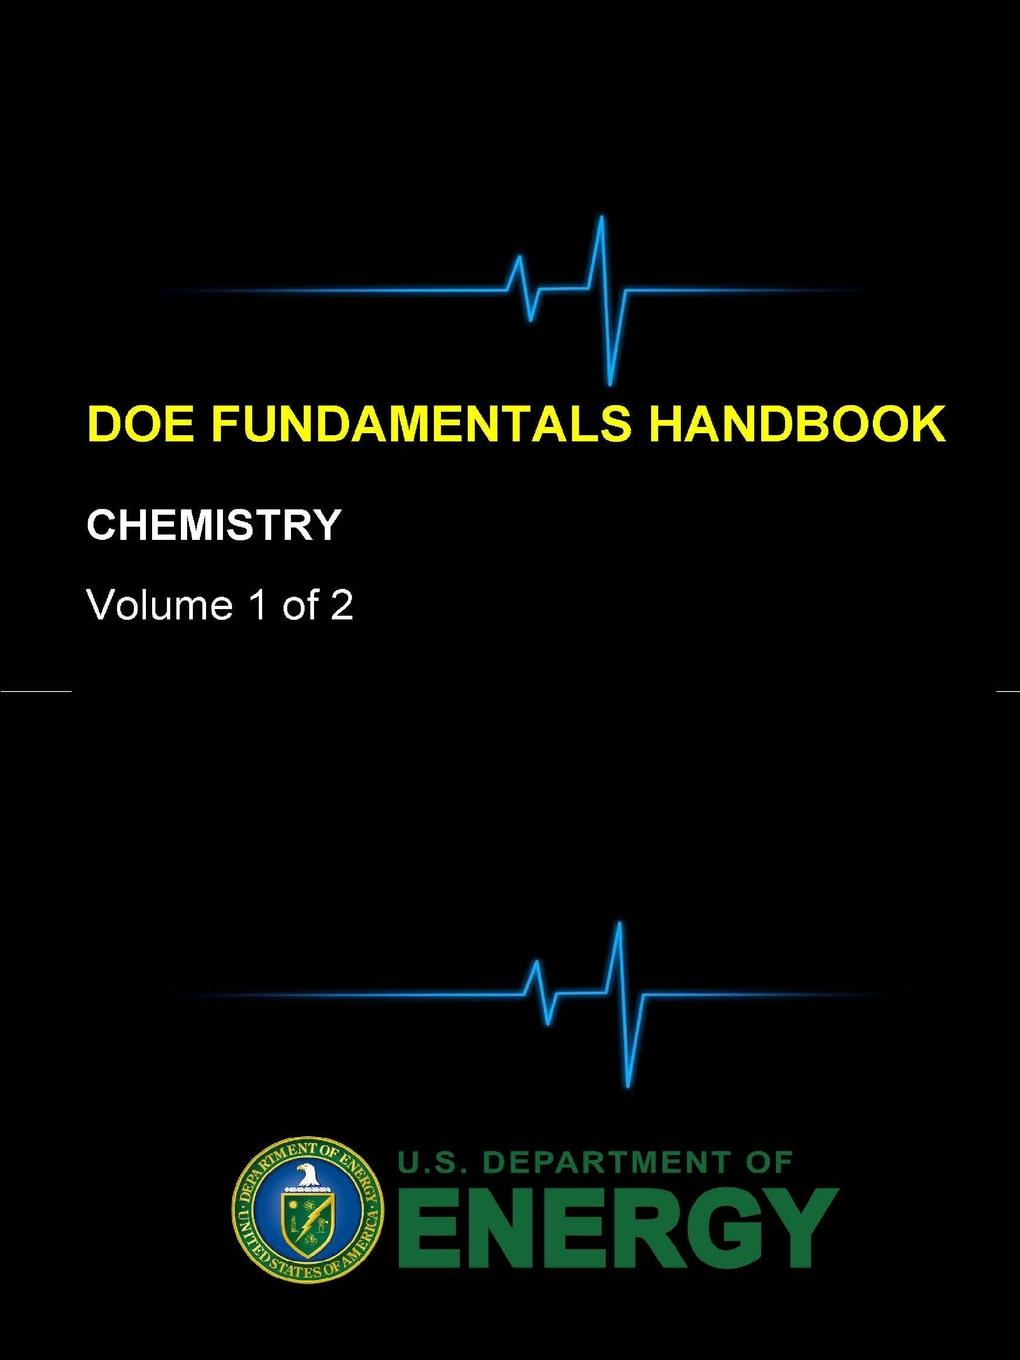 U.S. Department of Energy DOE Fundamentals Handbook - Chemistry (Volume 1 of 2) principles of machine operation and maintenance